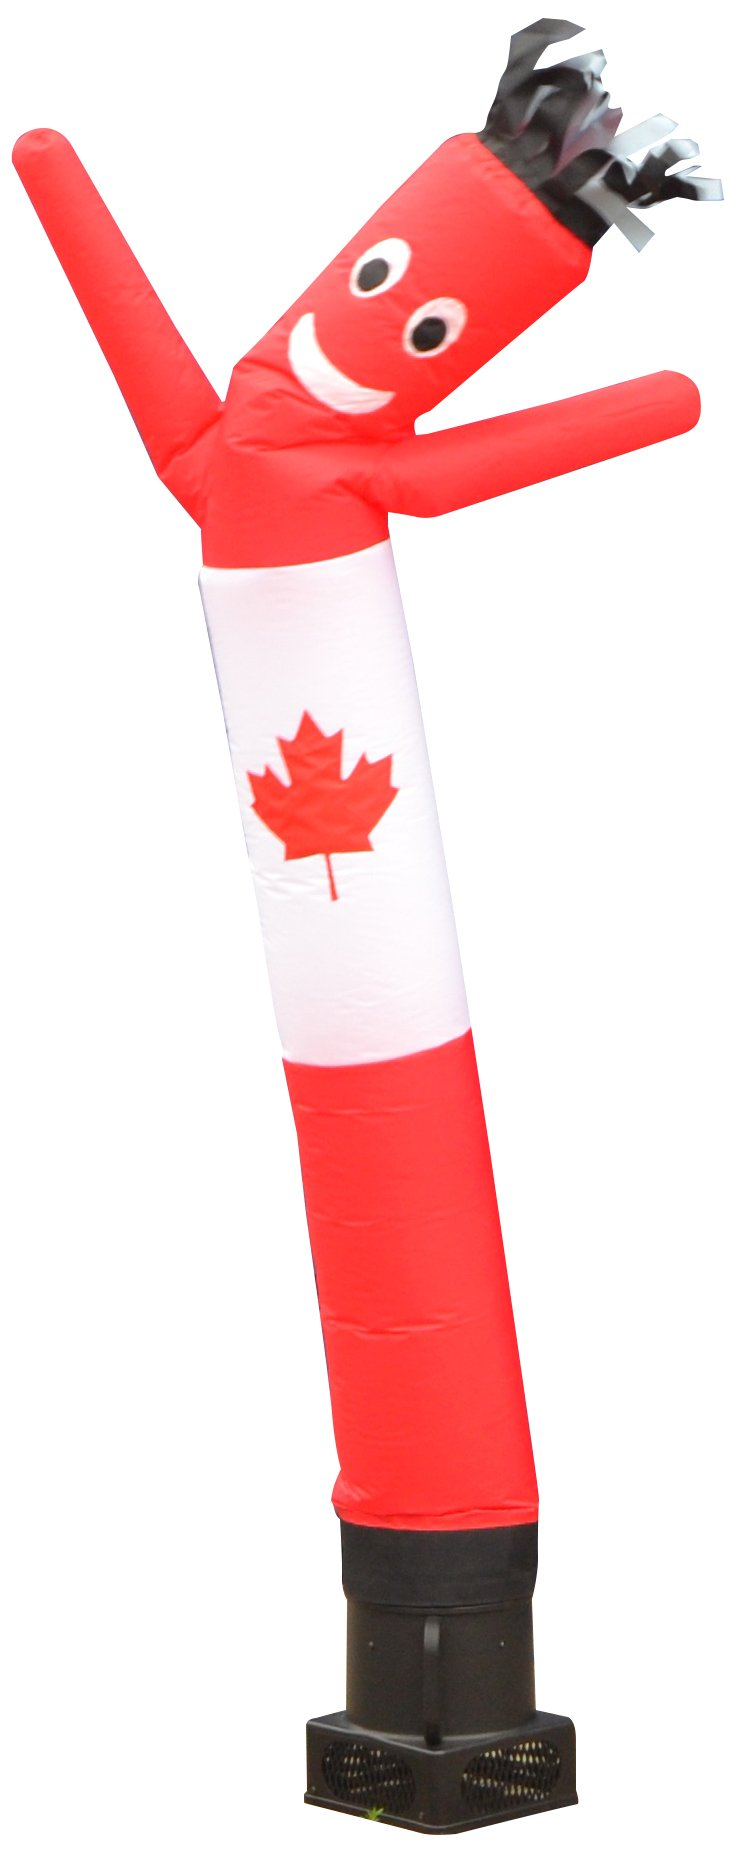 LookOurWay Air Dancers Inflatable Tube Man Complete Set with 1/4 HP Sky Dancer Blower, 6-Feet, Canadian Flag by LookOurWay